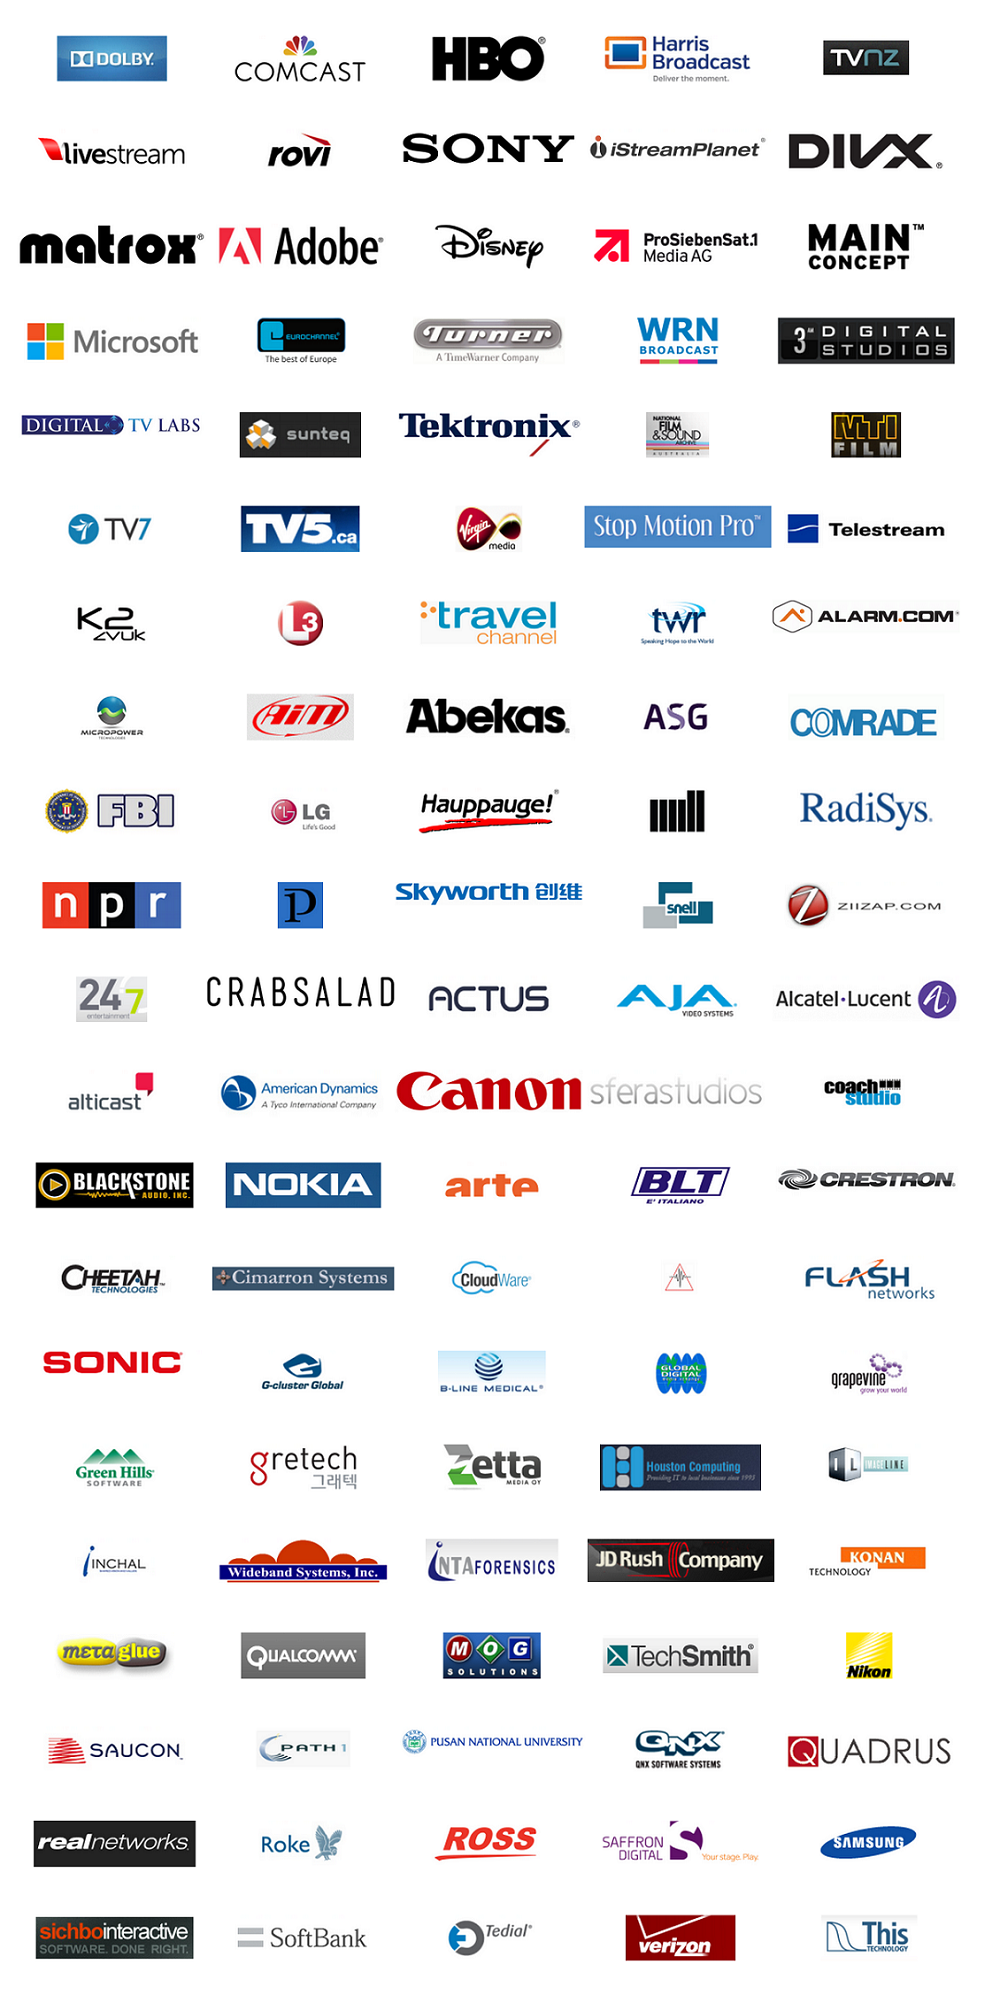 We are proud of our customers. Microsoft, HBO, Disney, Adobe, Dolby, Sony, Comcast, Turner, FBI and many more great companies have trusted our solutions.